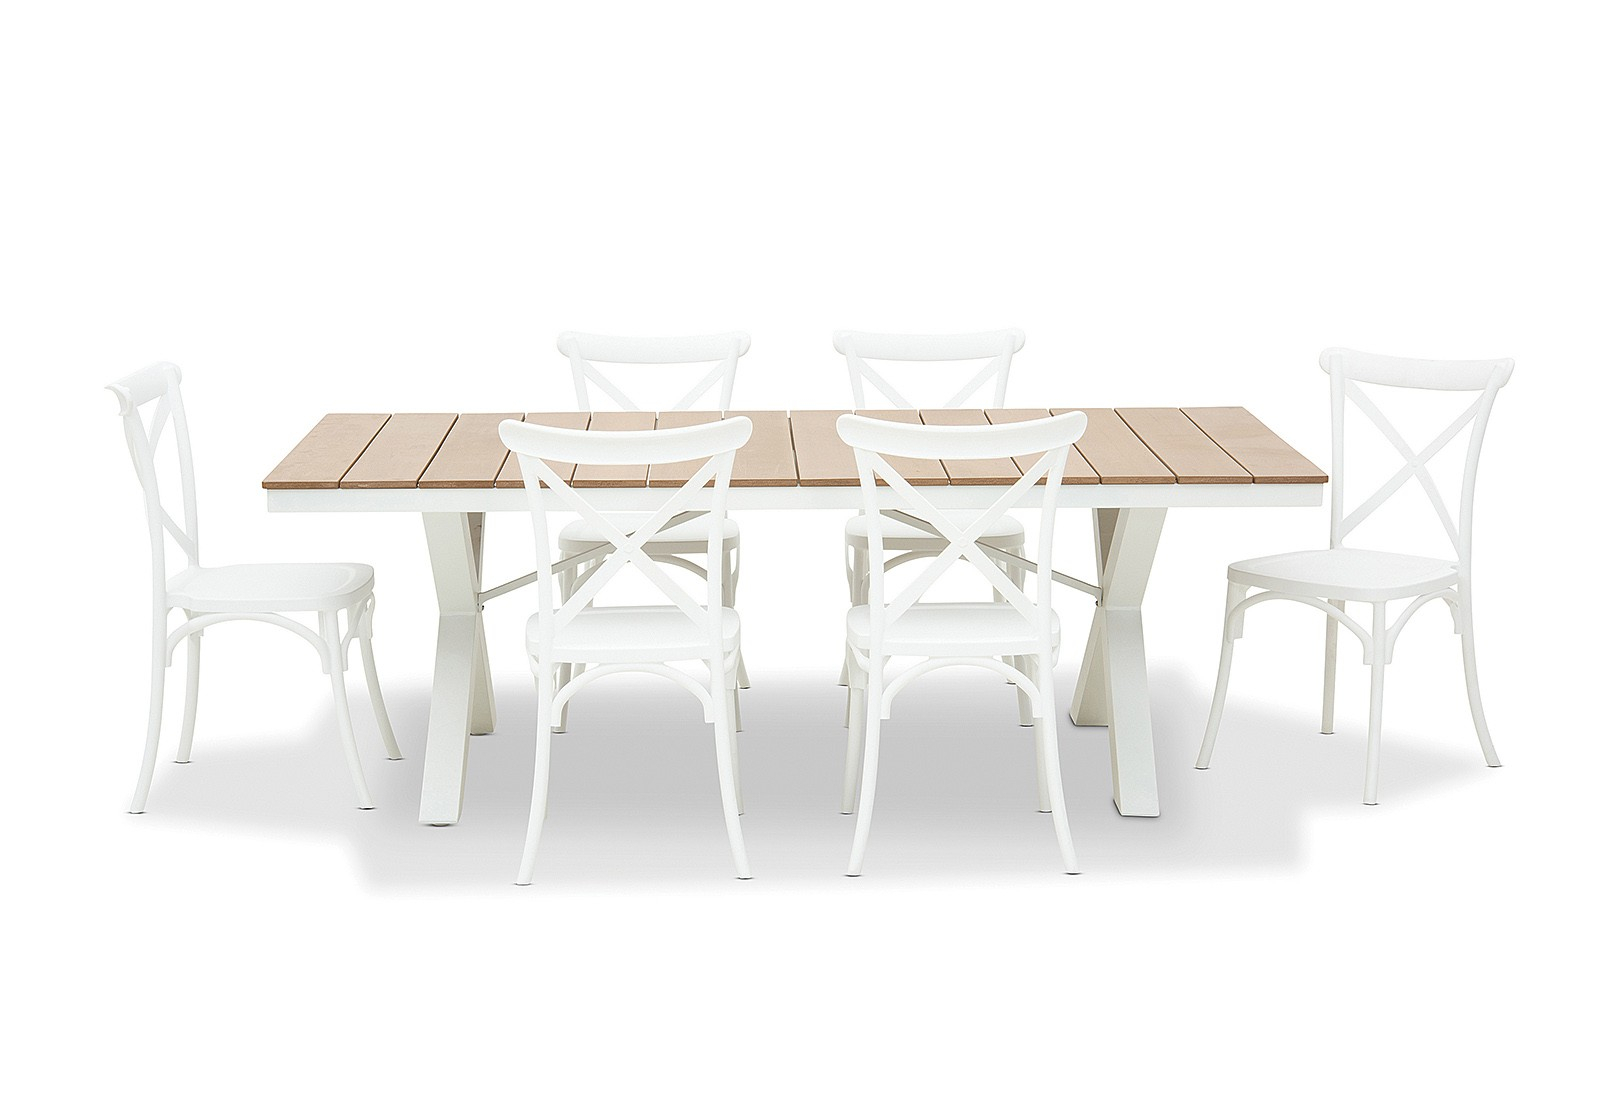 Outdoor Dining Furniture Settings | Amart Furniture In Most Current North Reading 5 Piece Dining Table Sets (View 9 of 20)